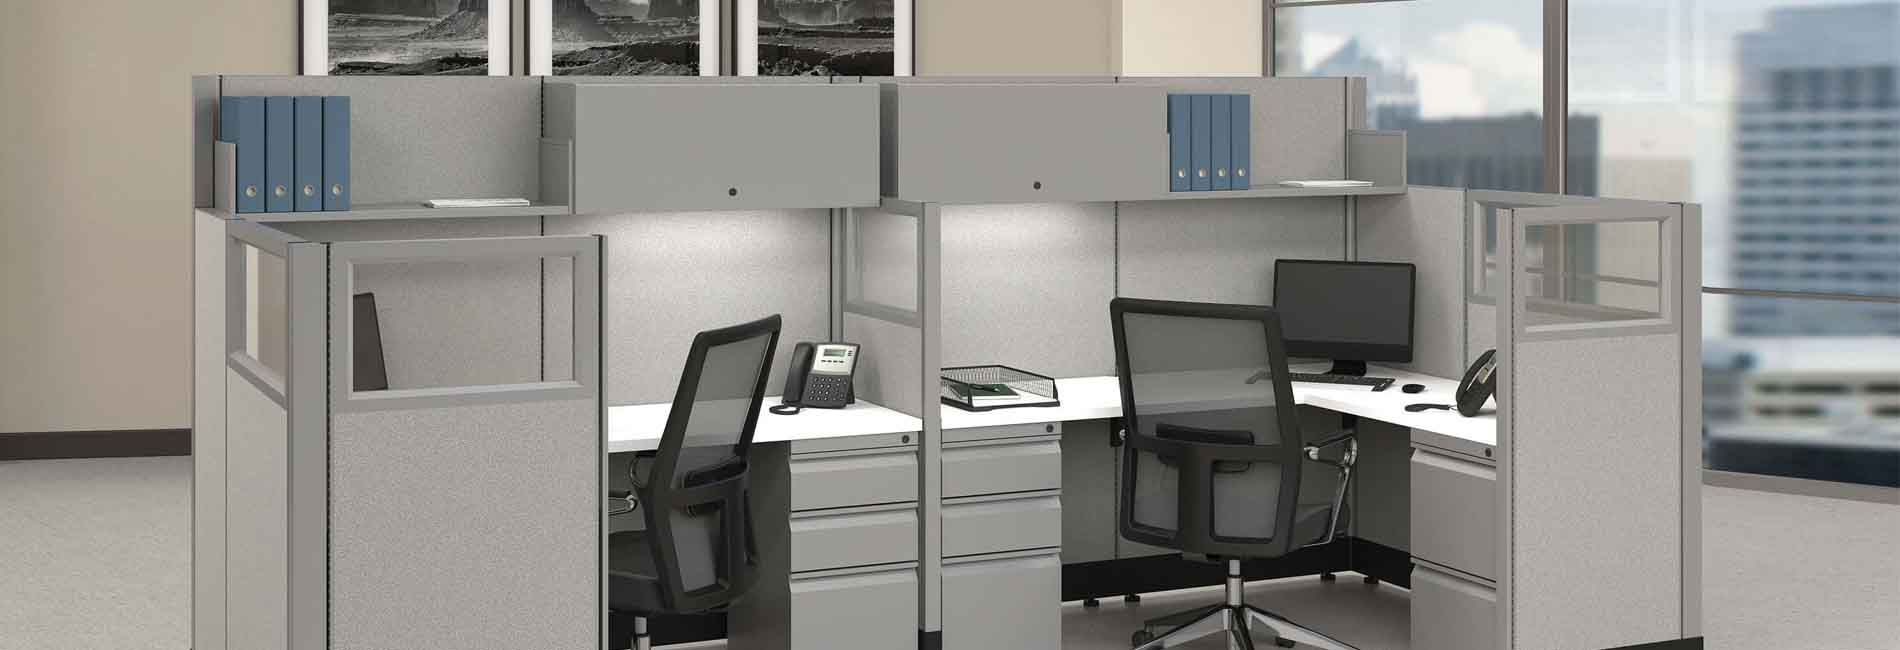 Office Furniture: O2 NOW™ Modular Office Furniture